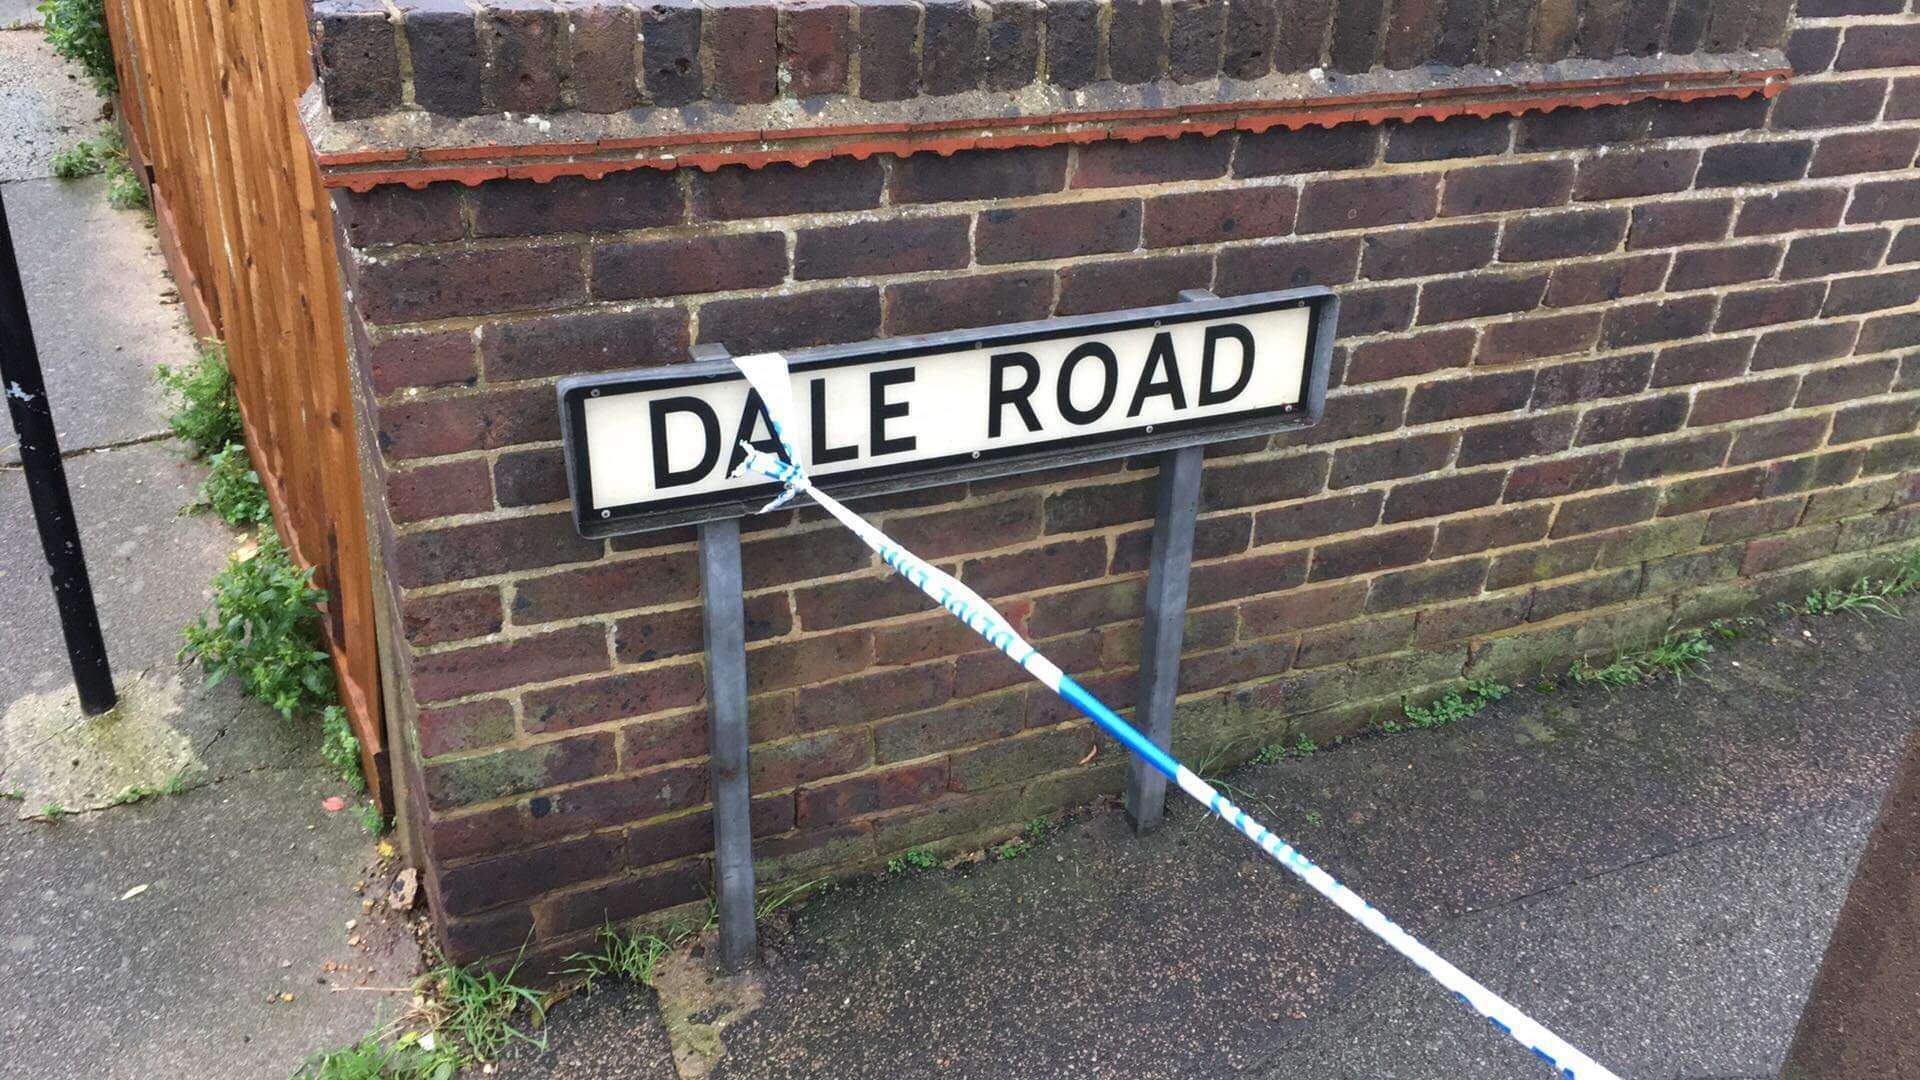 The incident was in Dale Street Road at the junction with Pickwick Crescent, Rochester